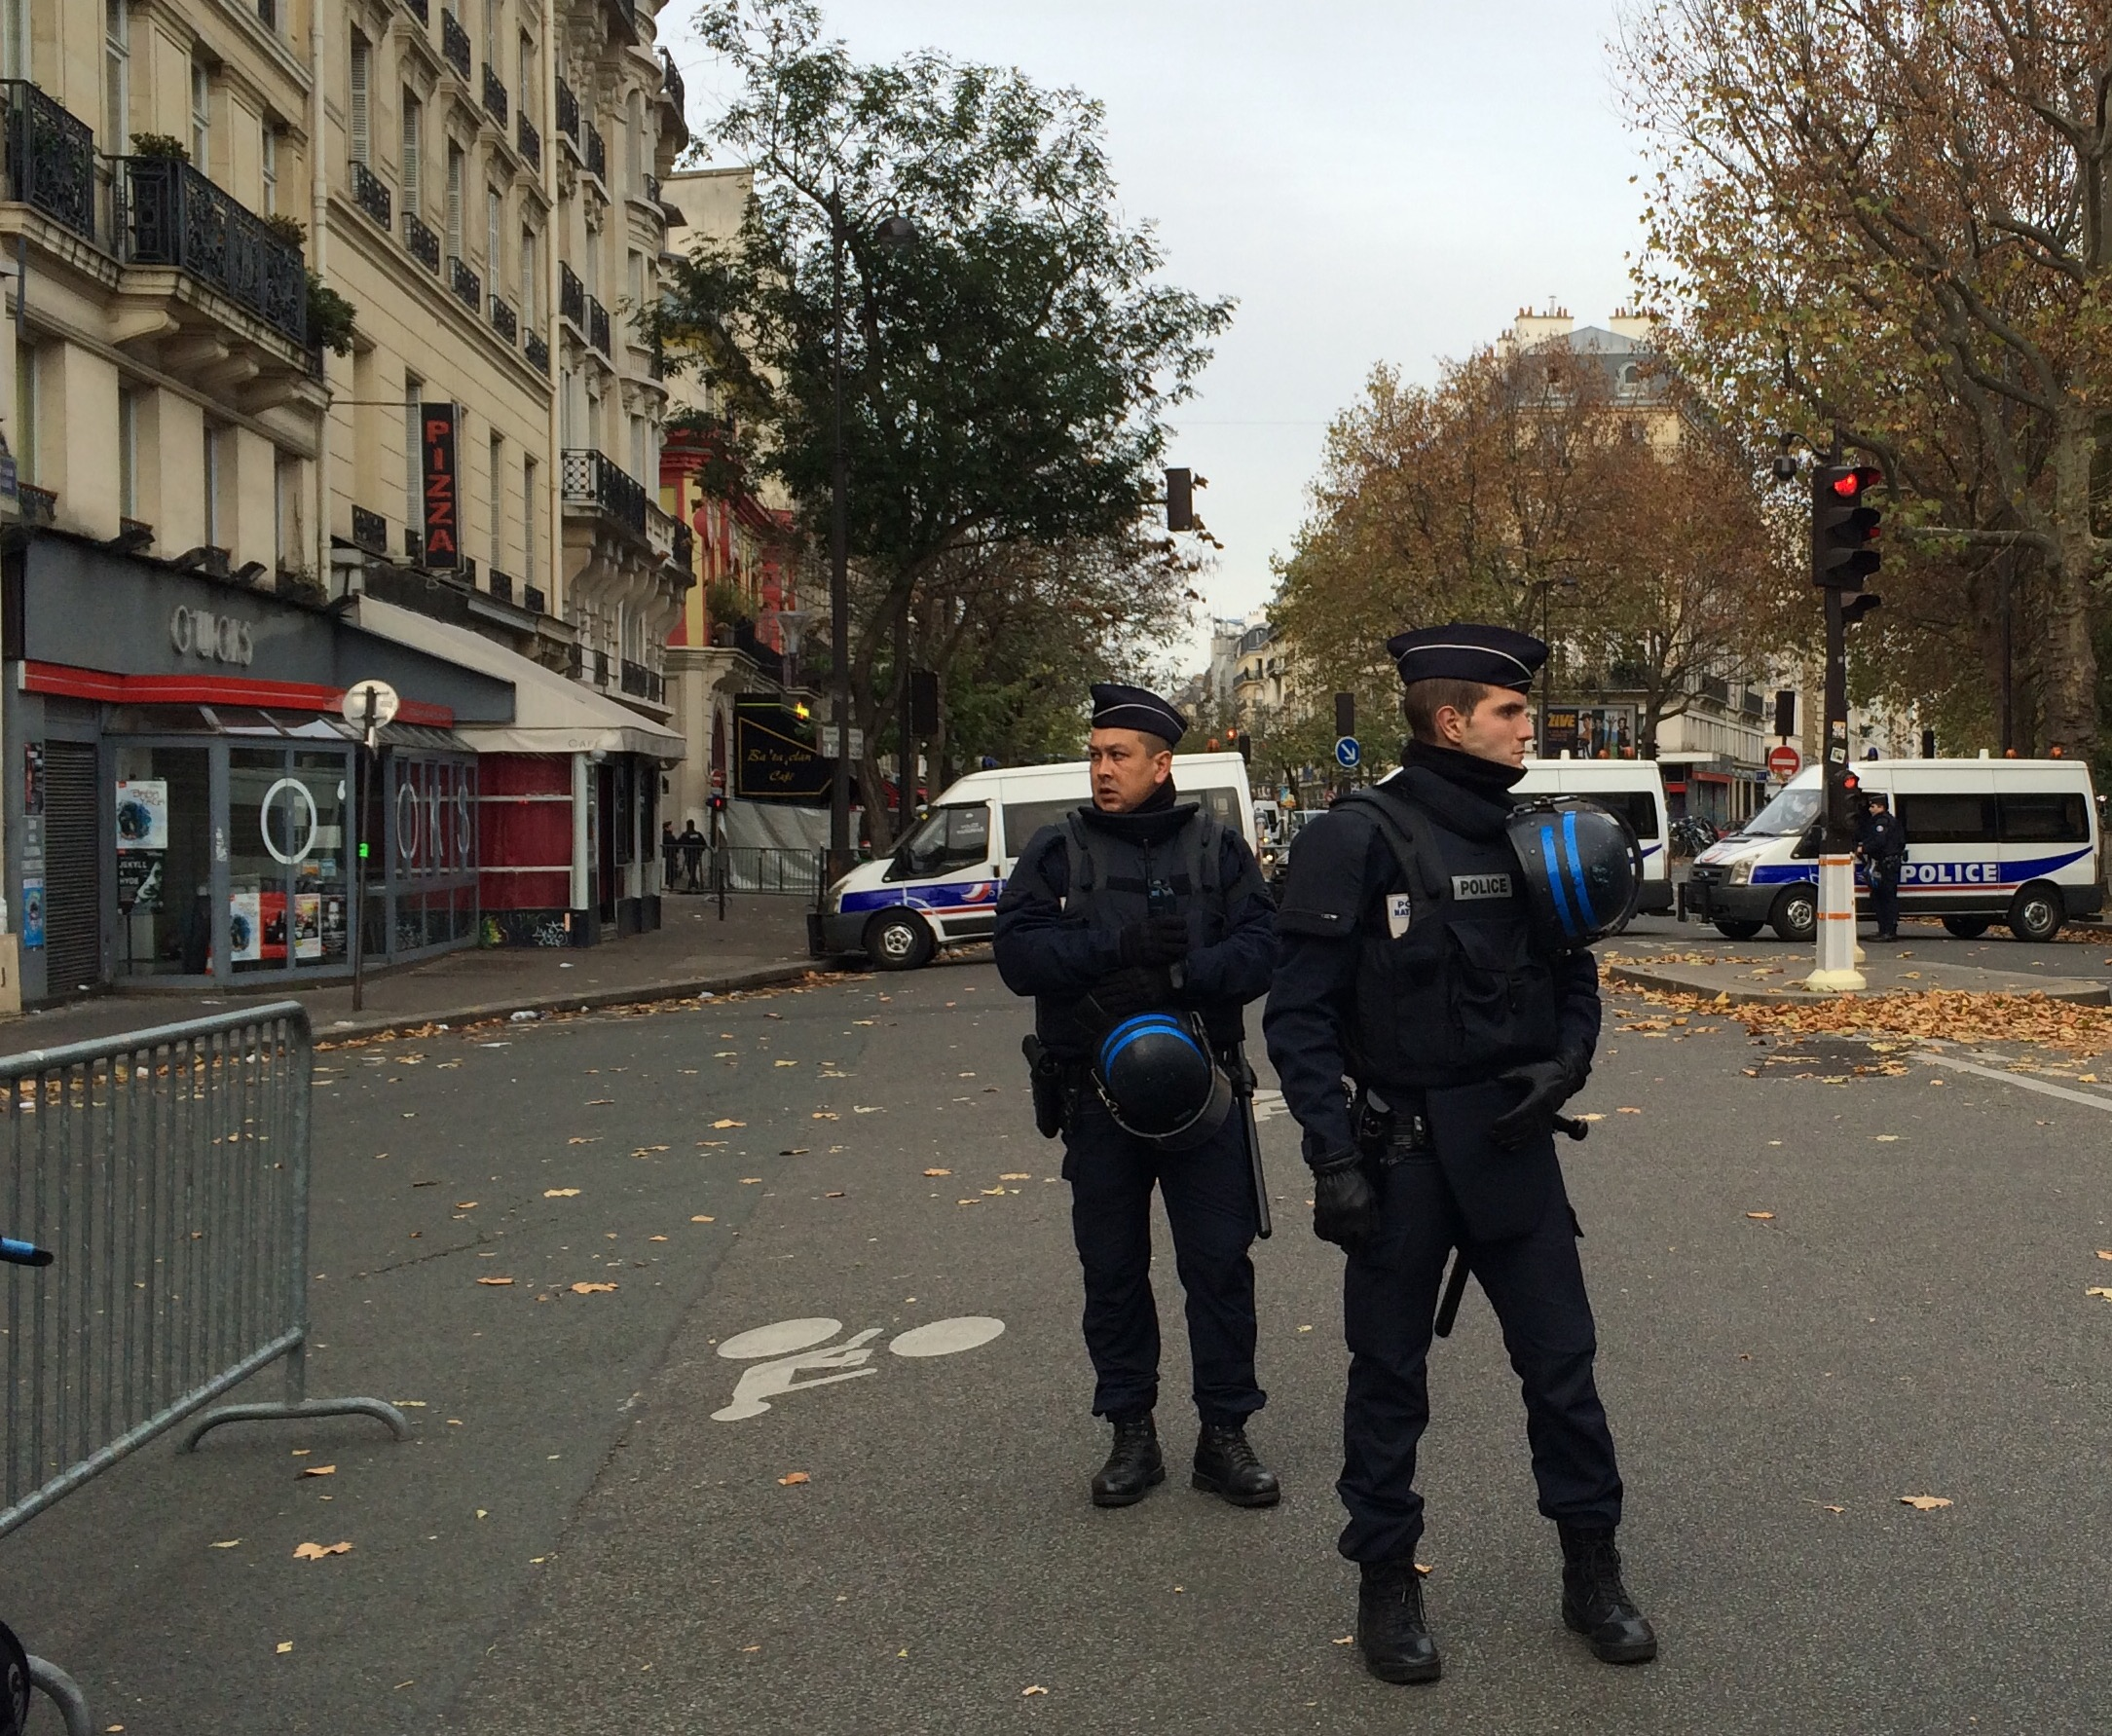 The morning after. Roadblock near the Bataclan.